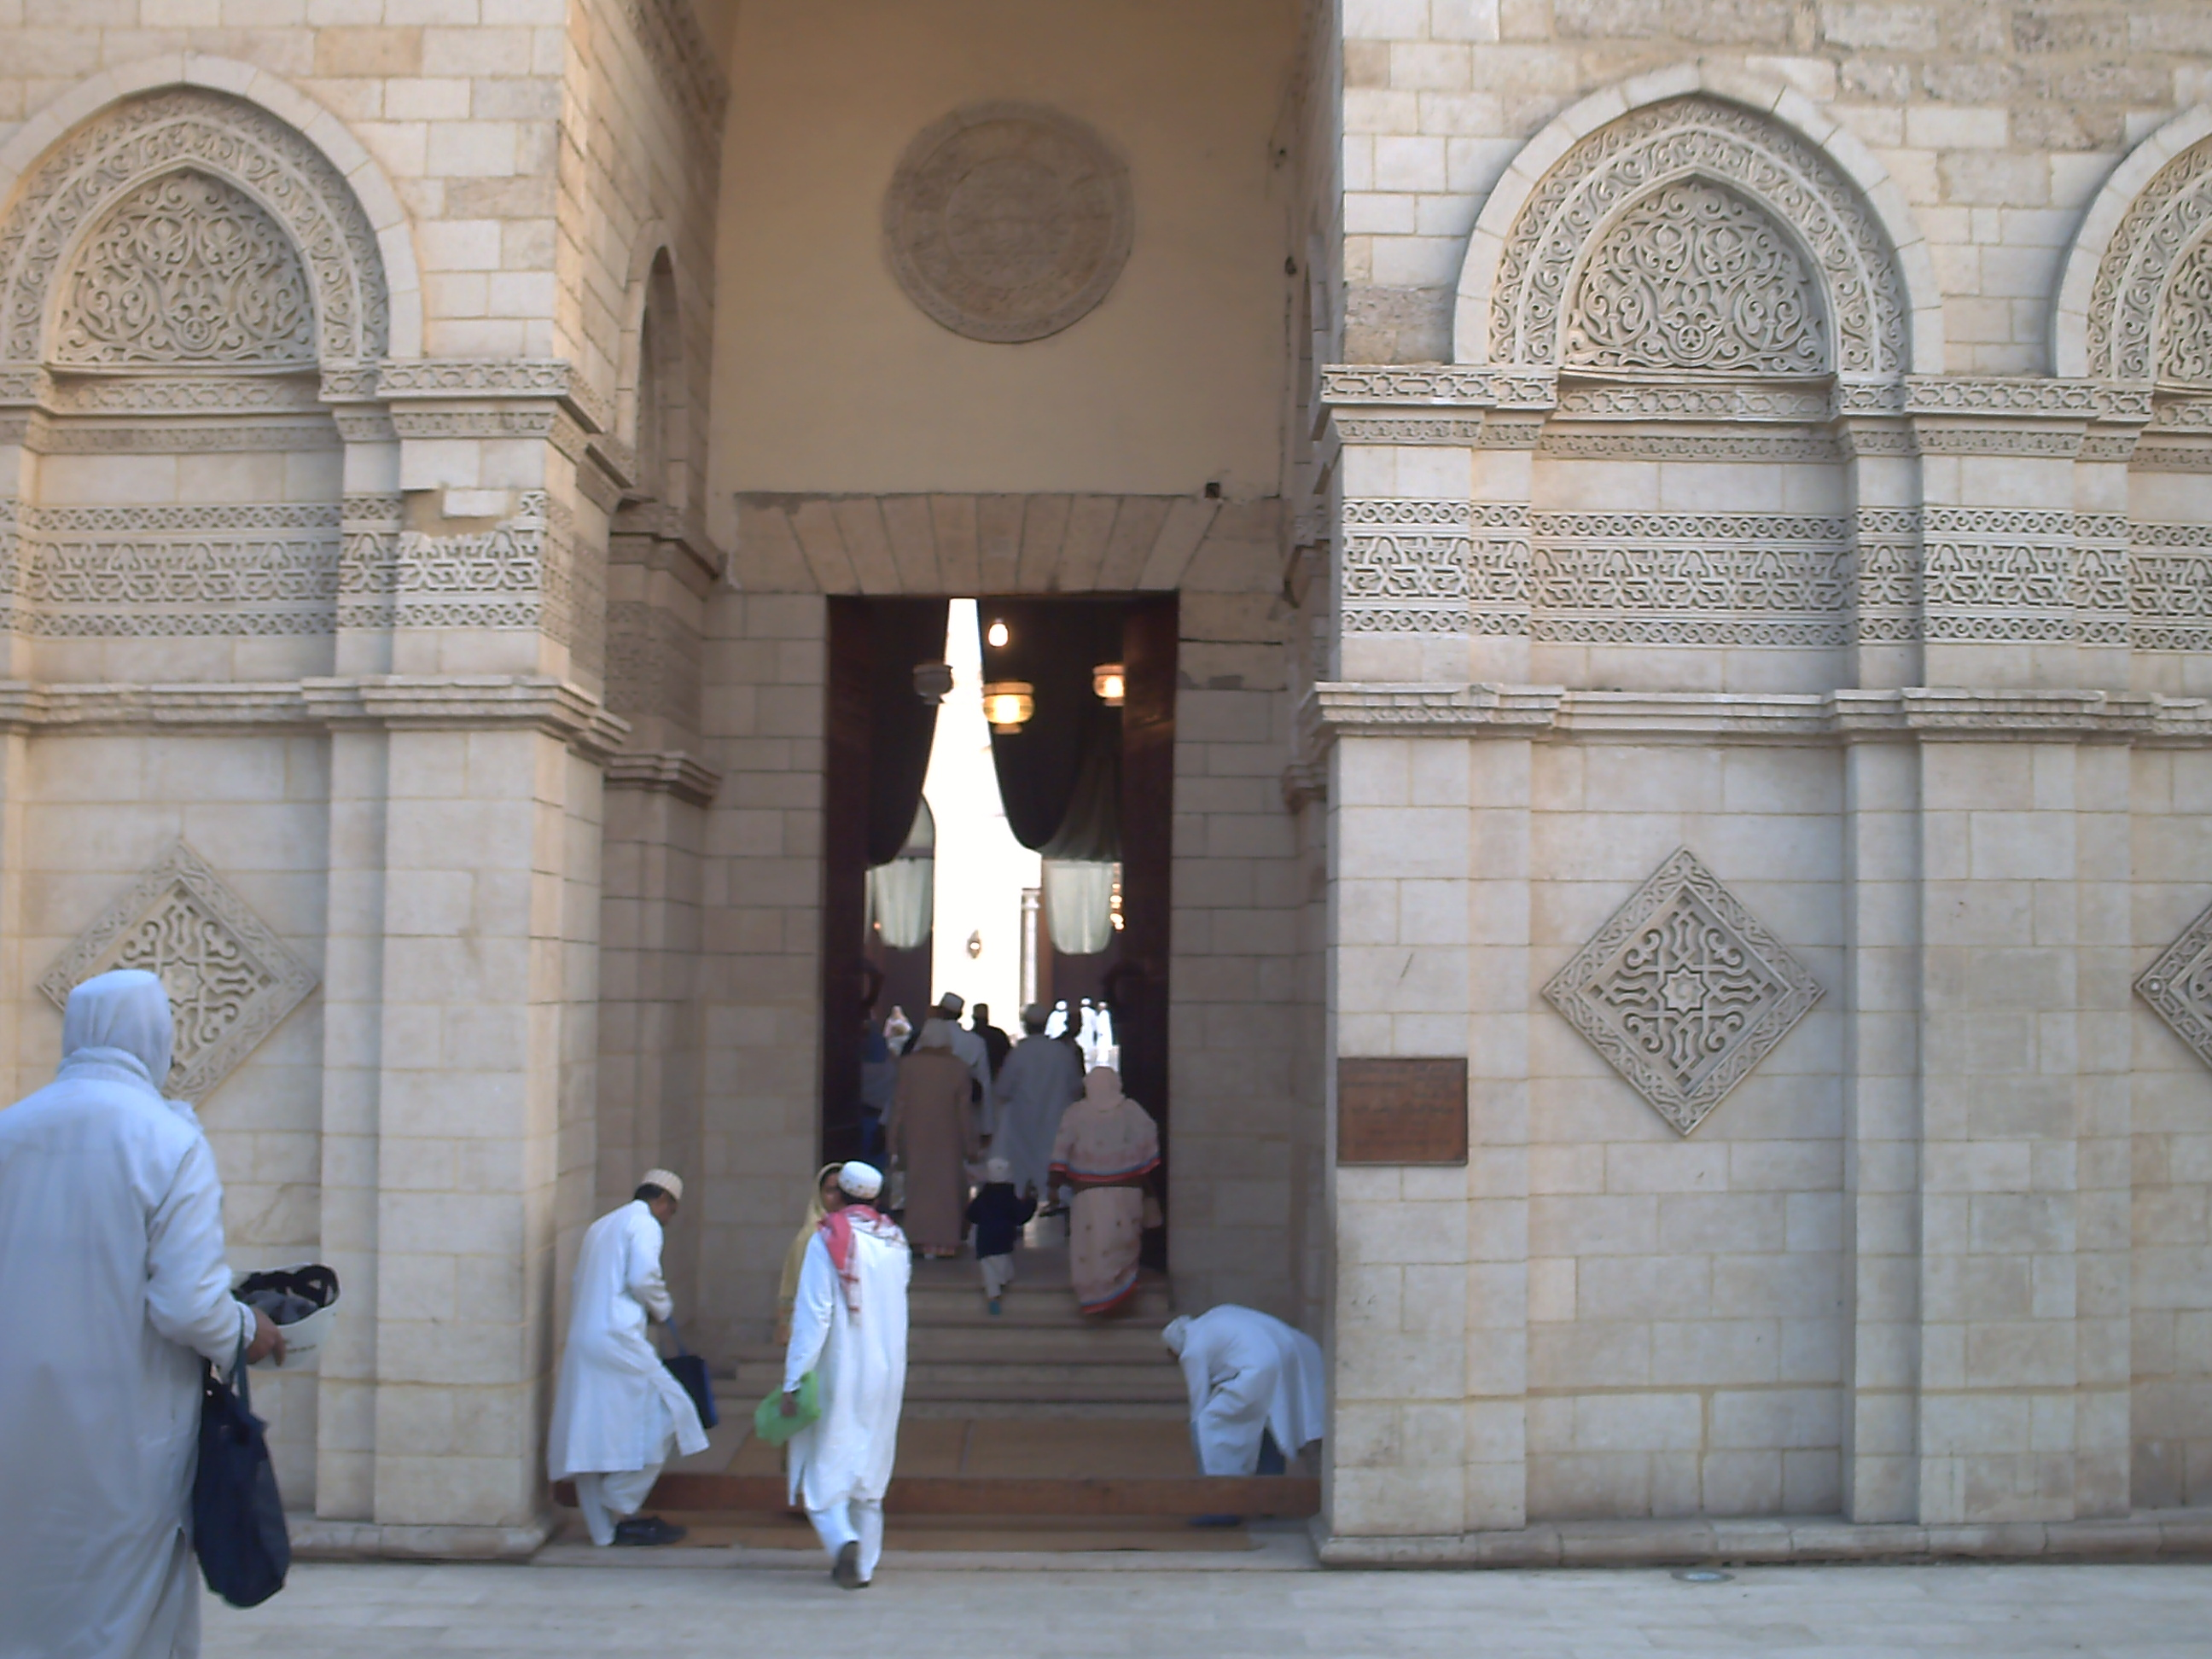 File:Entrance mosque Hakimi.jpg - Wikimedia Commons